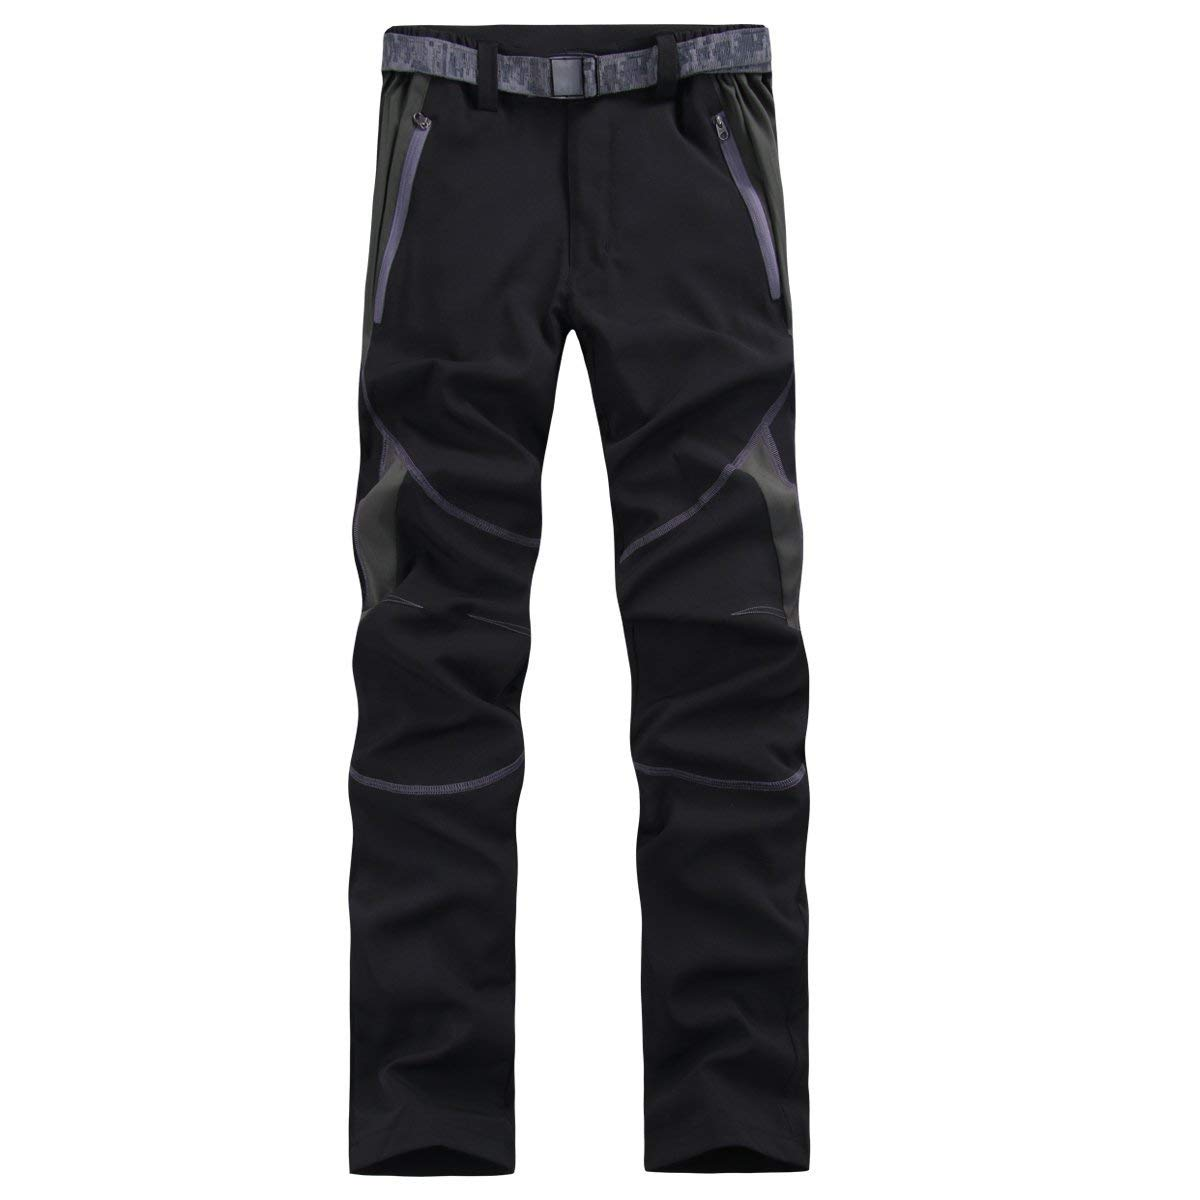 mansmoer Women's Outdoor Quick Dry Sunscreen Pants Lady Trousers Hiking Camping